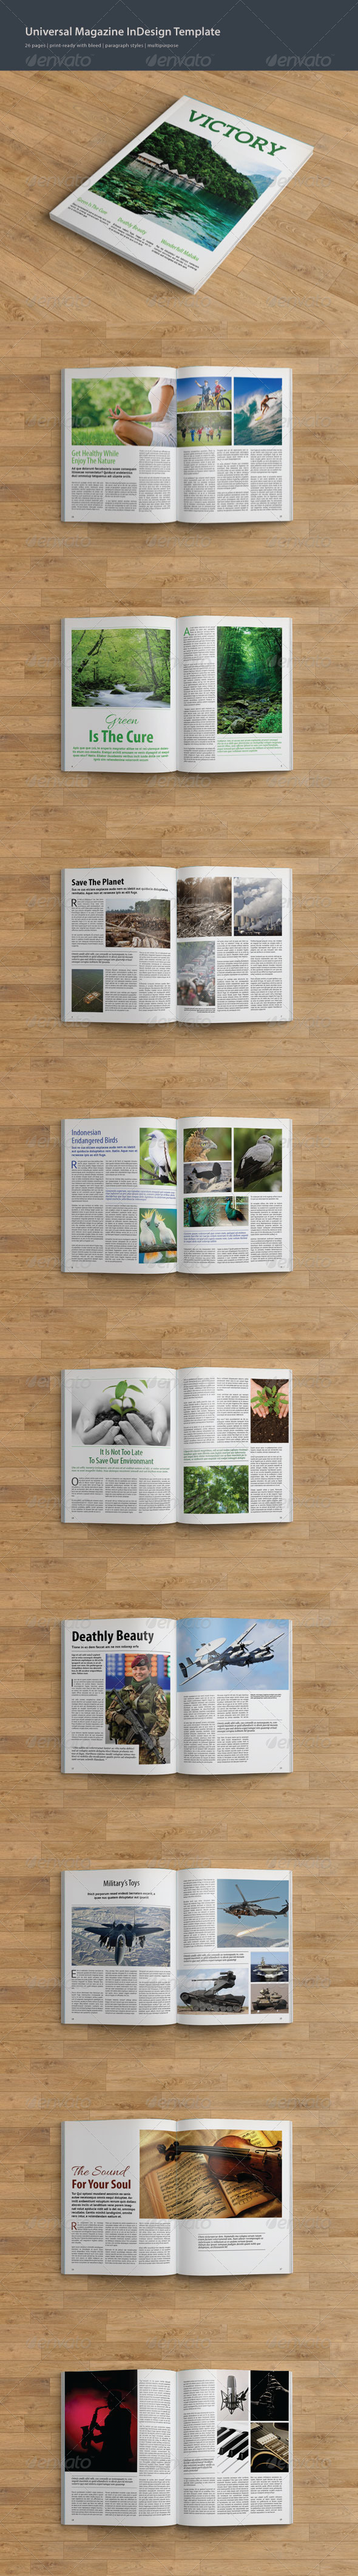 GraphicRiver Universal Magazine InDesign Template 7721075